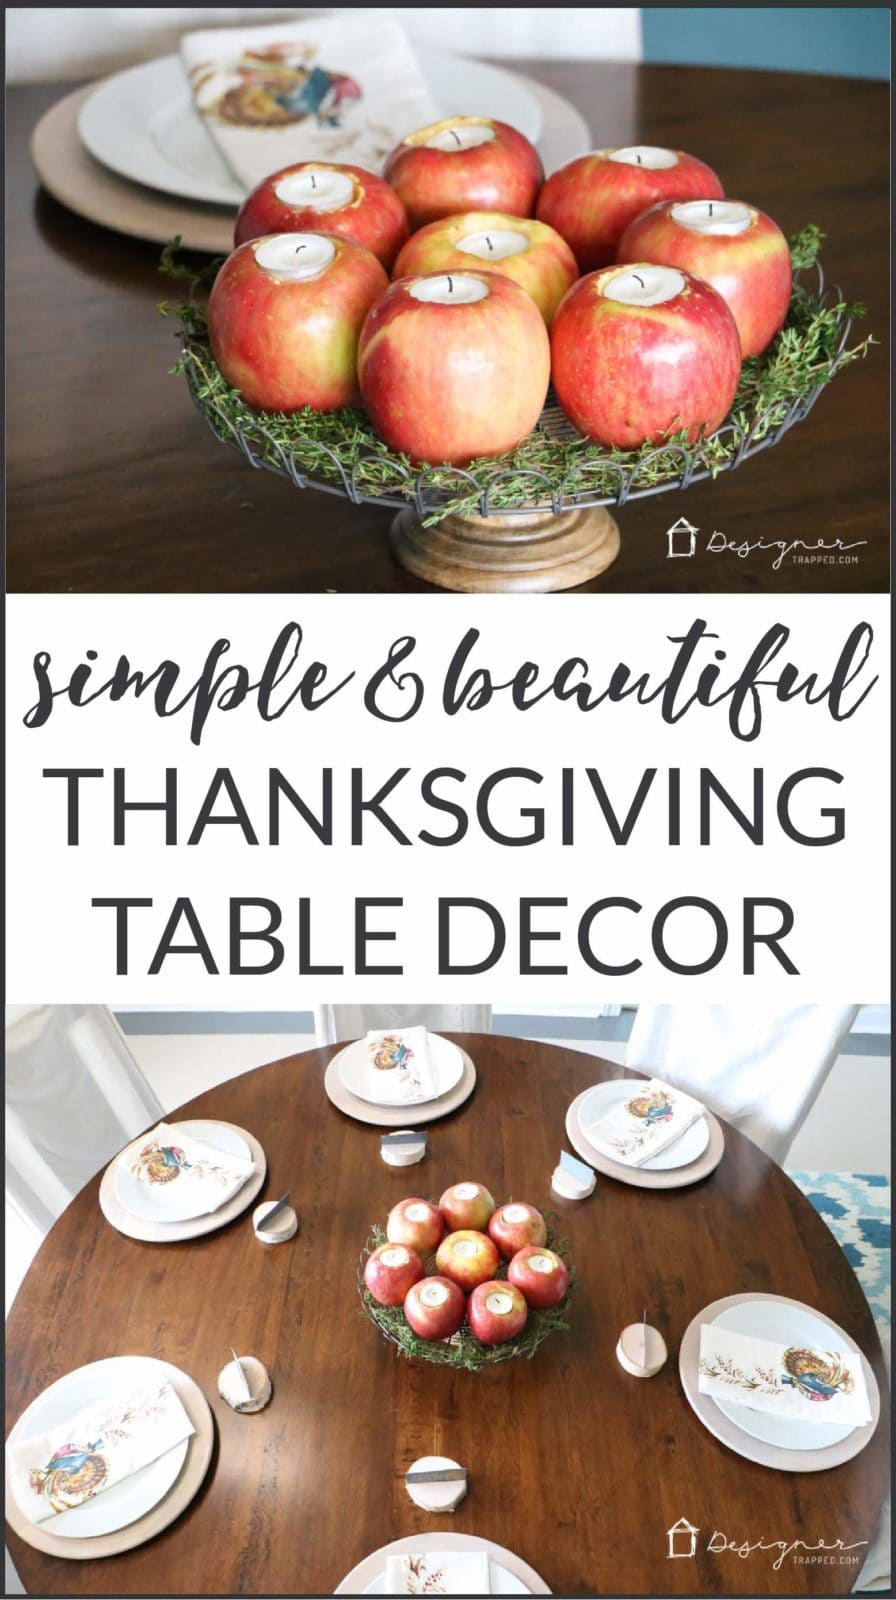 This bloggeru0027s Thanksgiving table setting is simple yet stunning. Come see how  sc 1 st  Designer Trapped in a Lawyeru0027s Body & Our Simple Thanksgiving Table Setting | Designer Trapped in a ...